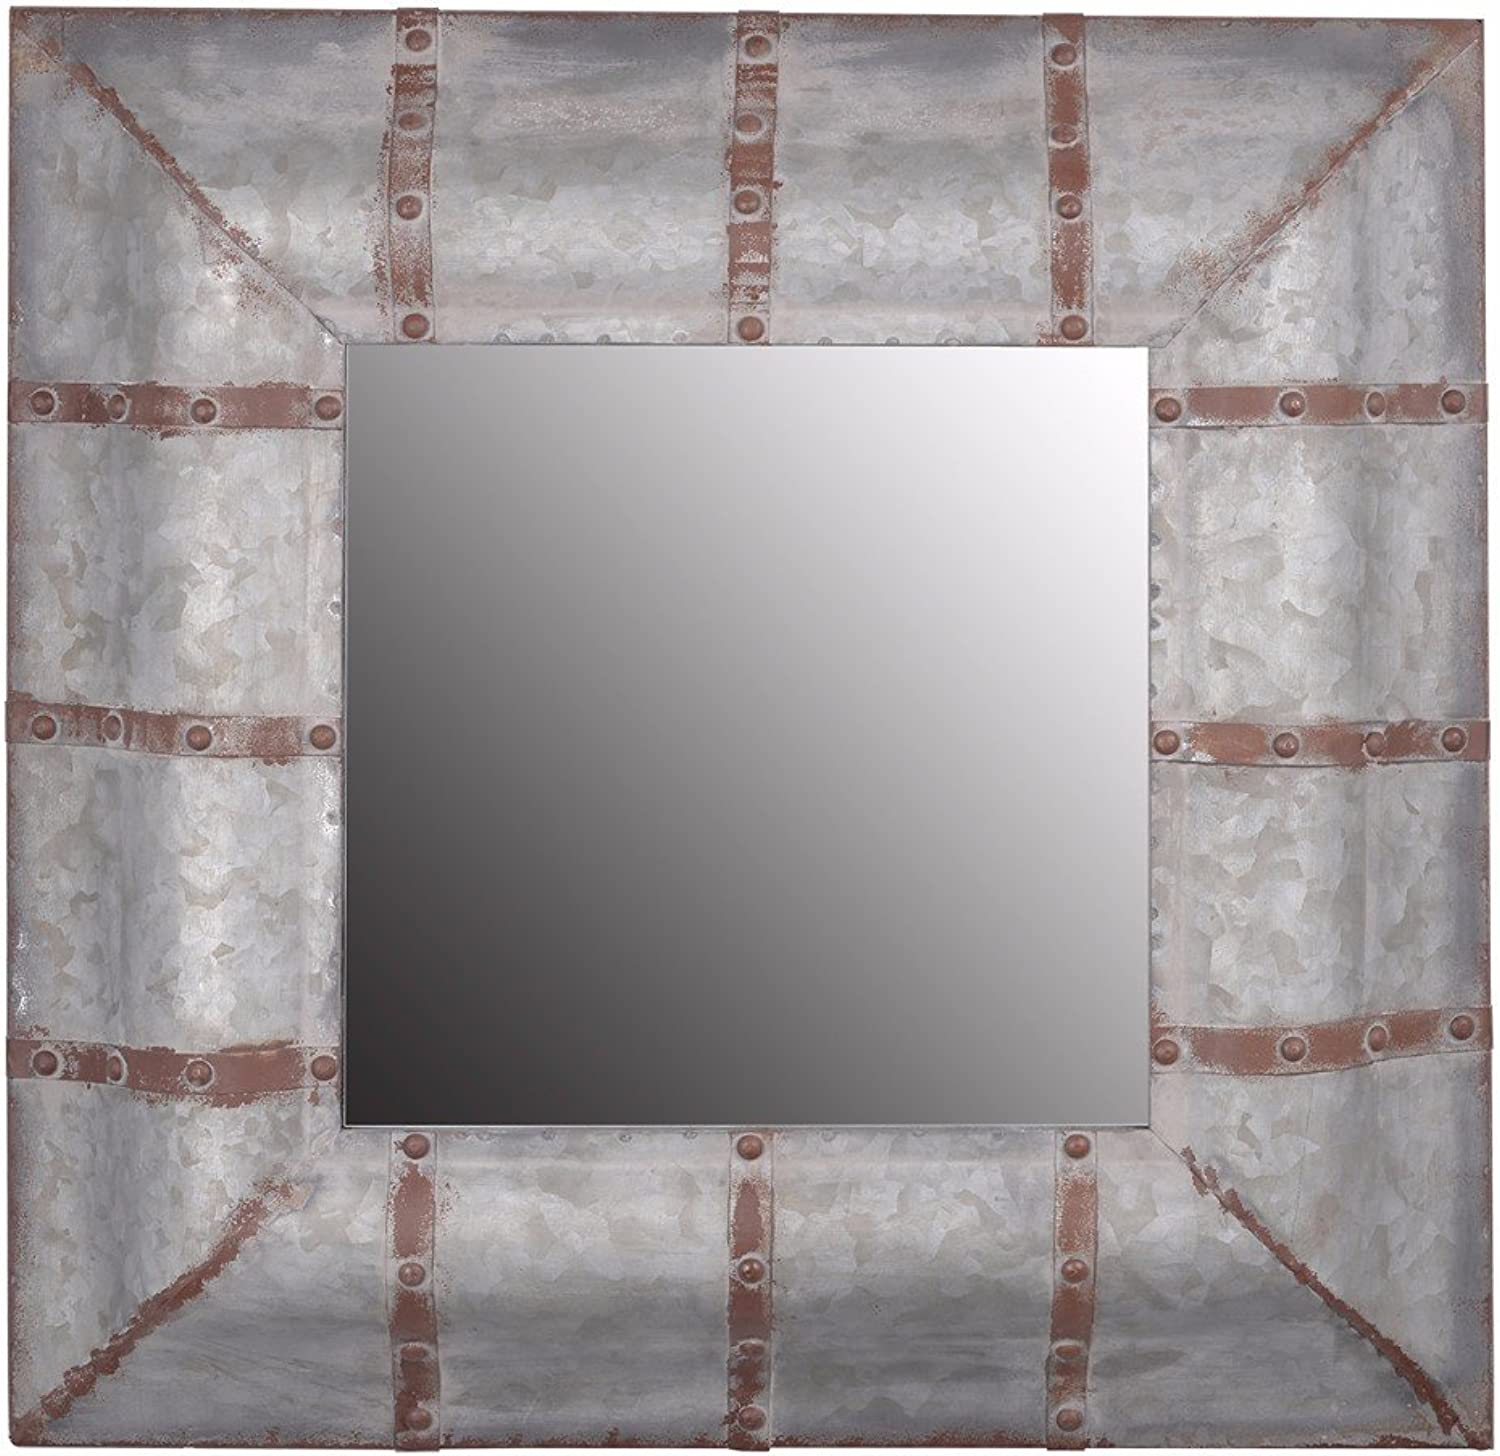 Benzara Unadorned Rustic Framed Baldwin Mirror Home Accents